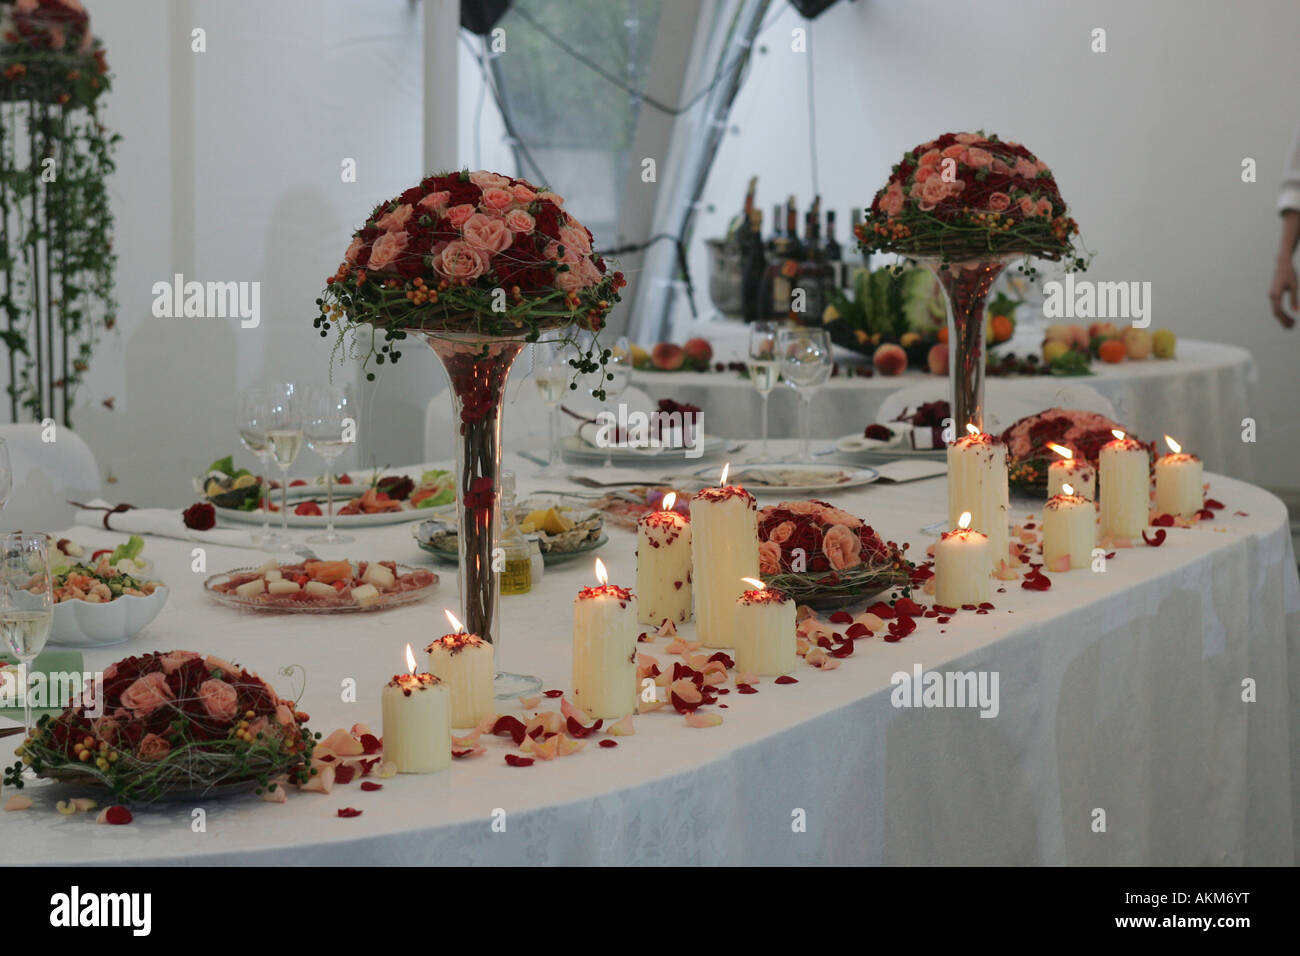 Some burning candles burning on the high table at a wedding reception. This is the table used by the bride and groom. - Stock Image